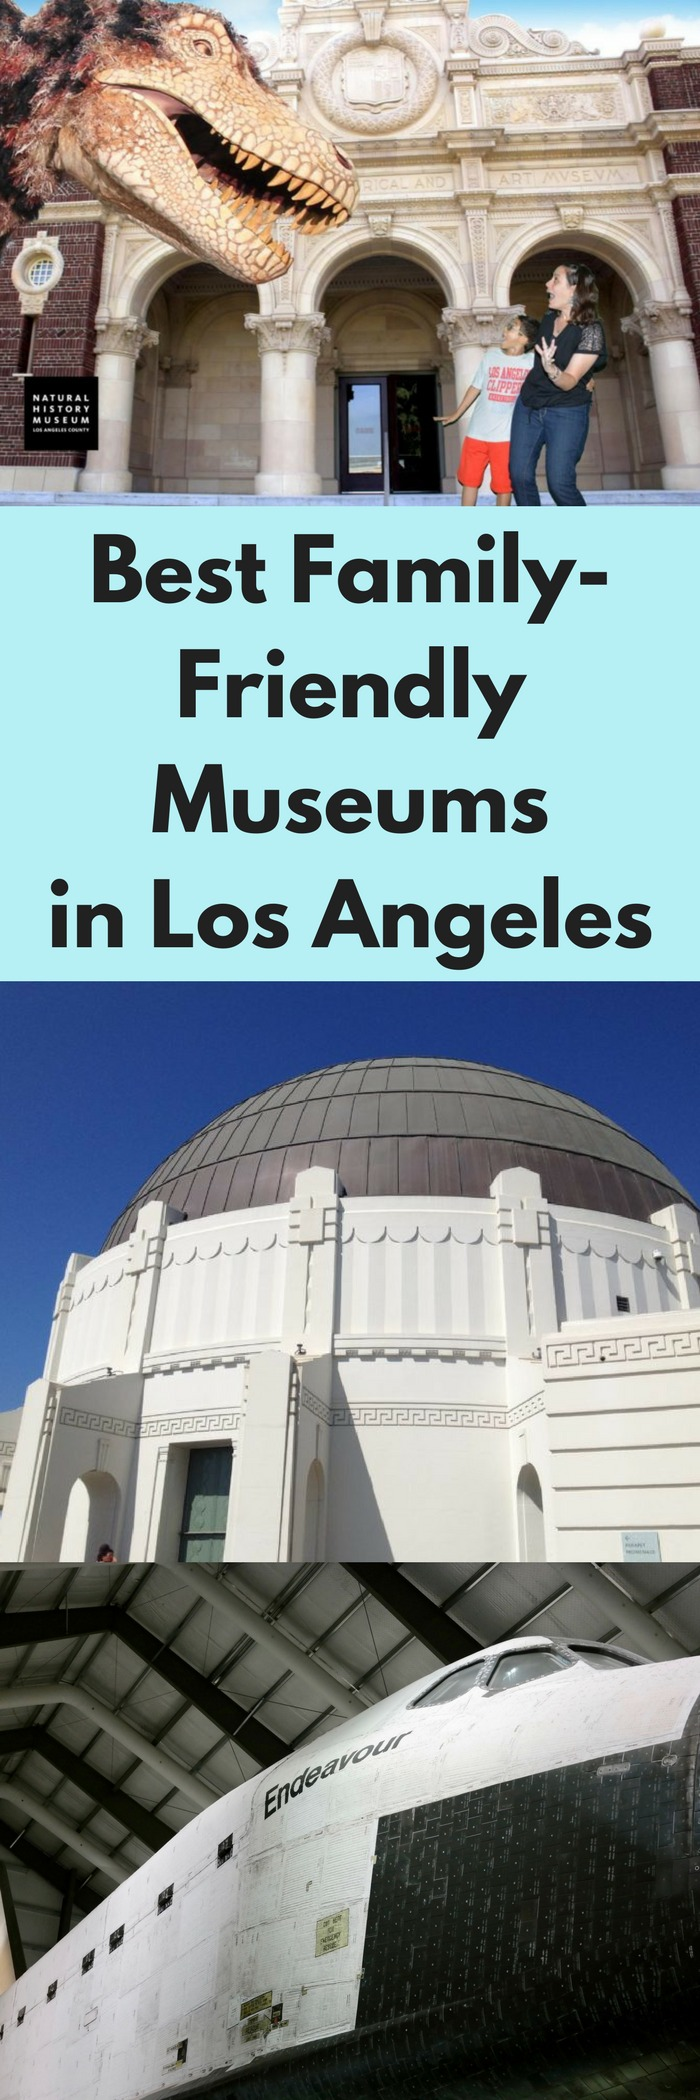 Best Family-Friendly Museums in Los Angeles. #losangeles #museums #travel #thingstodoinlosangeles